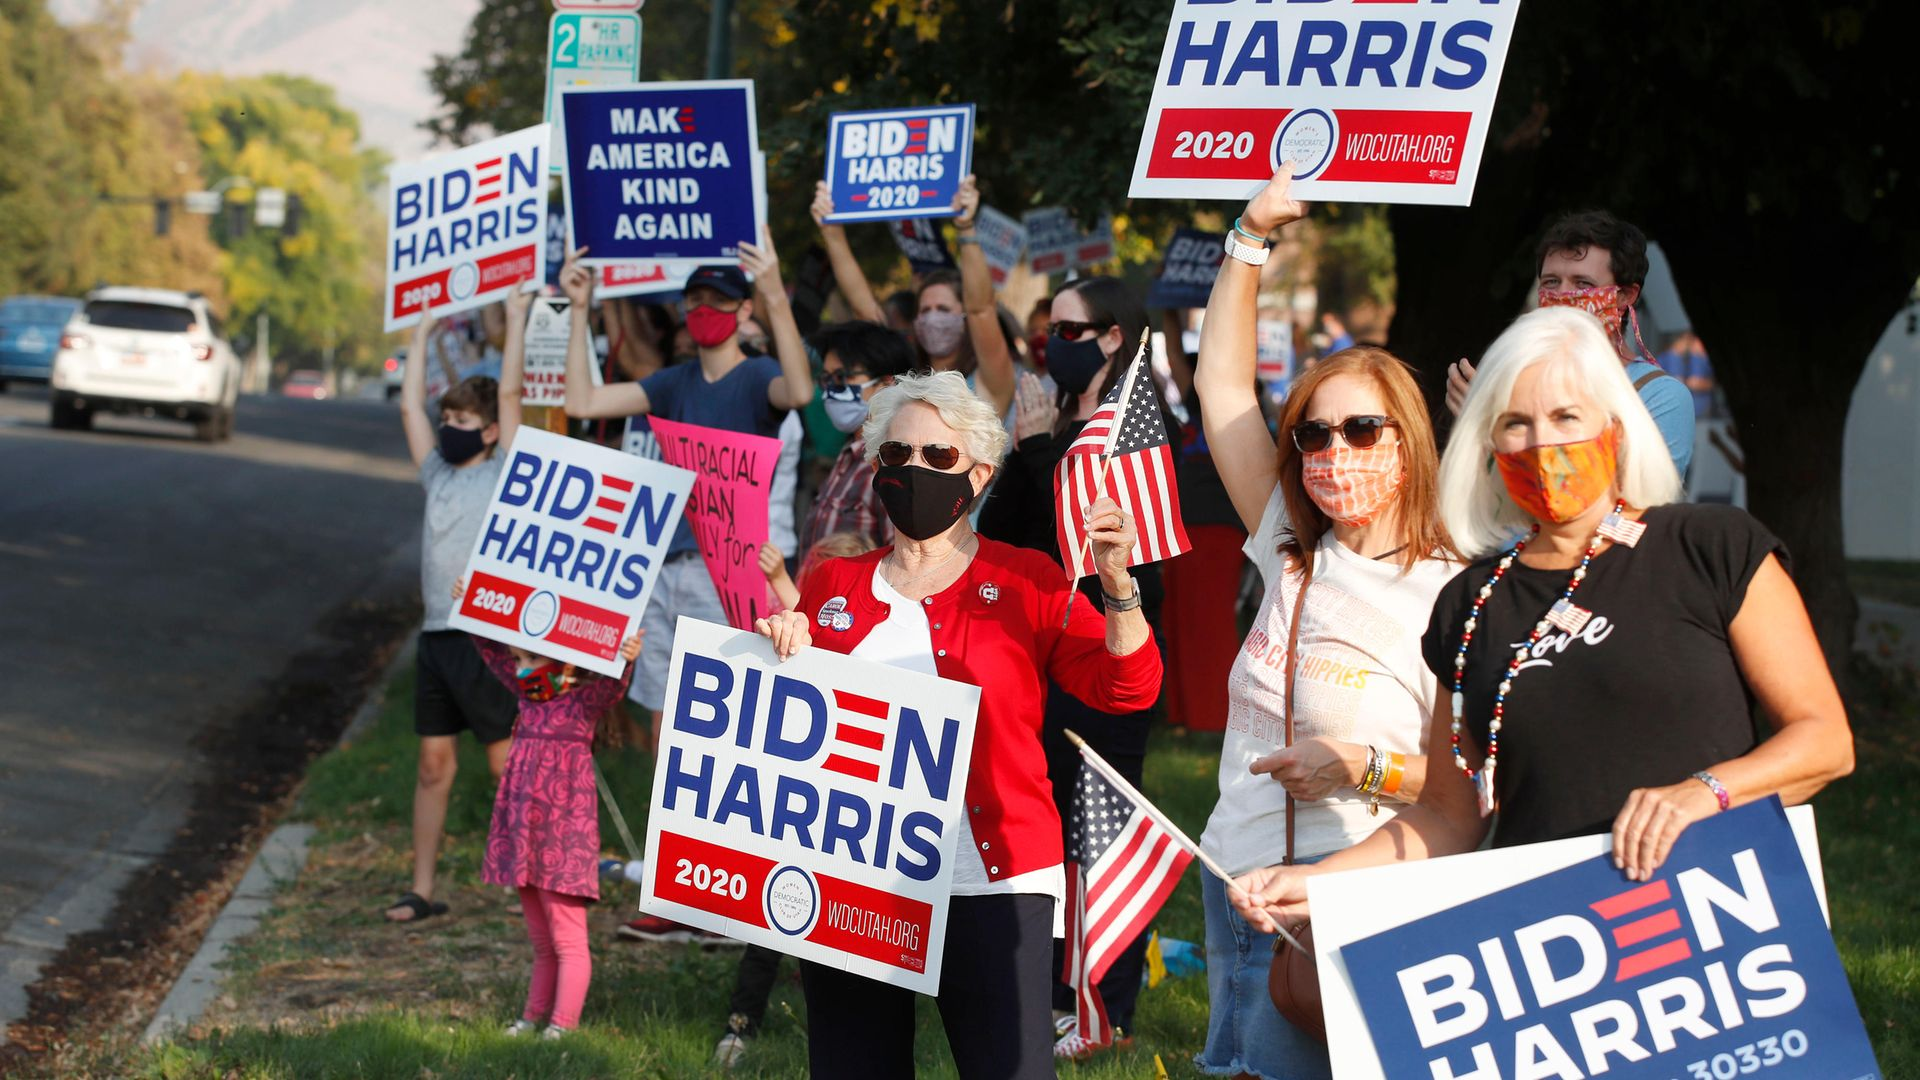 Women in Utah show their support for Joe Biden during the US election campaign; America's women are strongly Democratic and have been vital to the party's electoral success - Credit: AFP via Getty Images